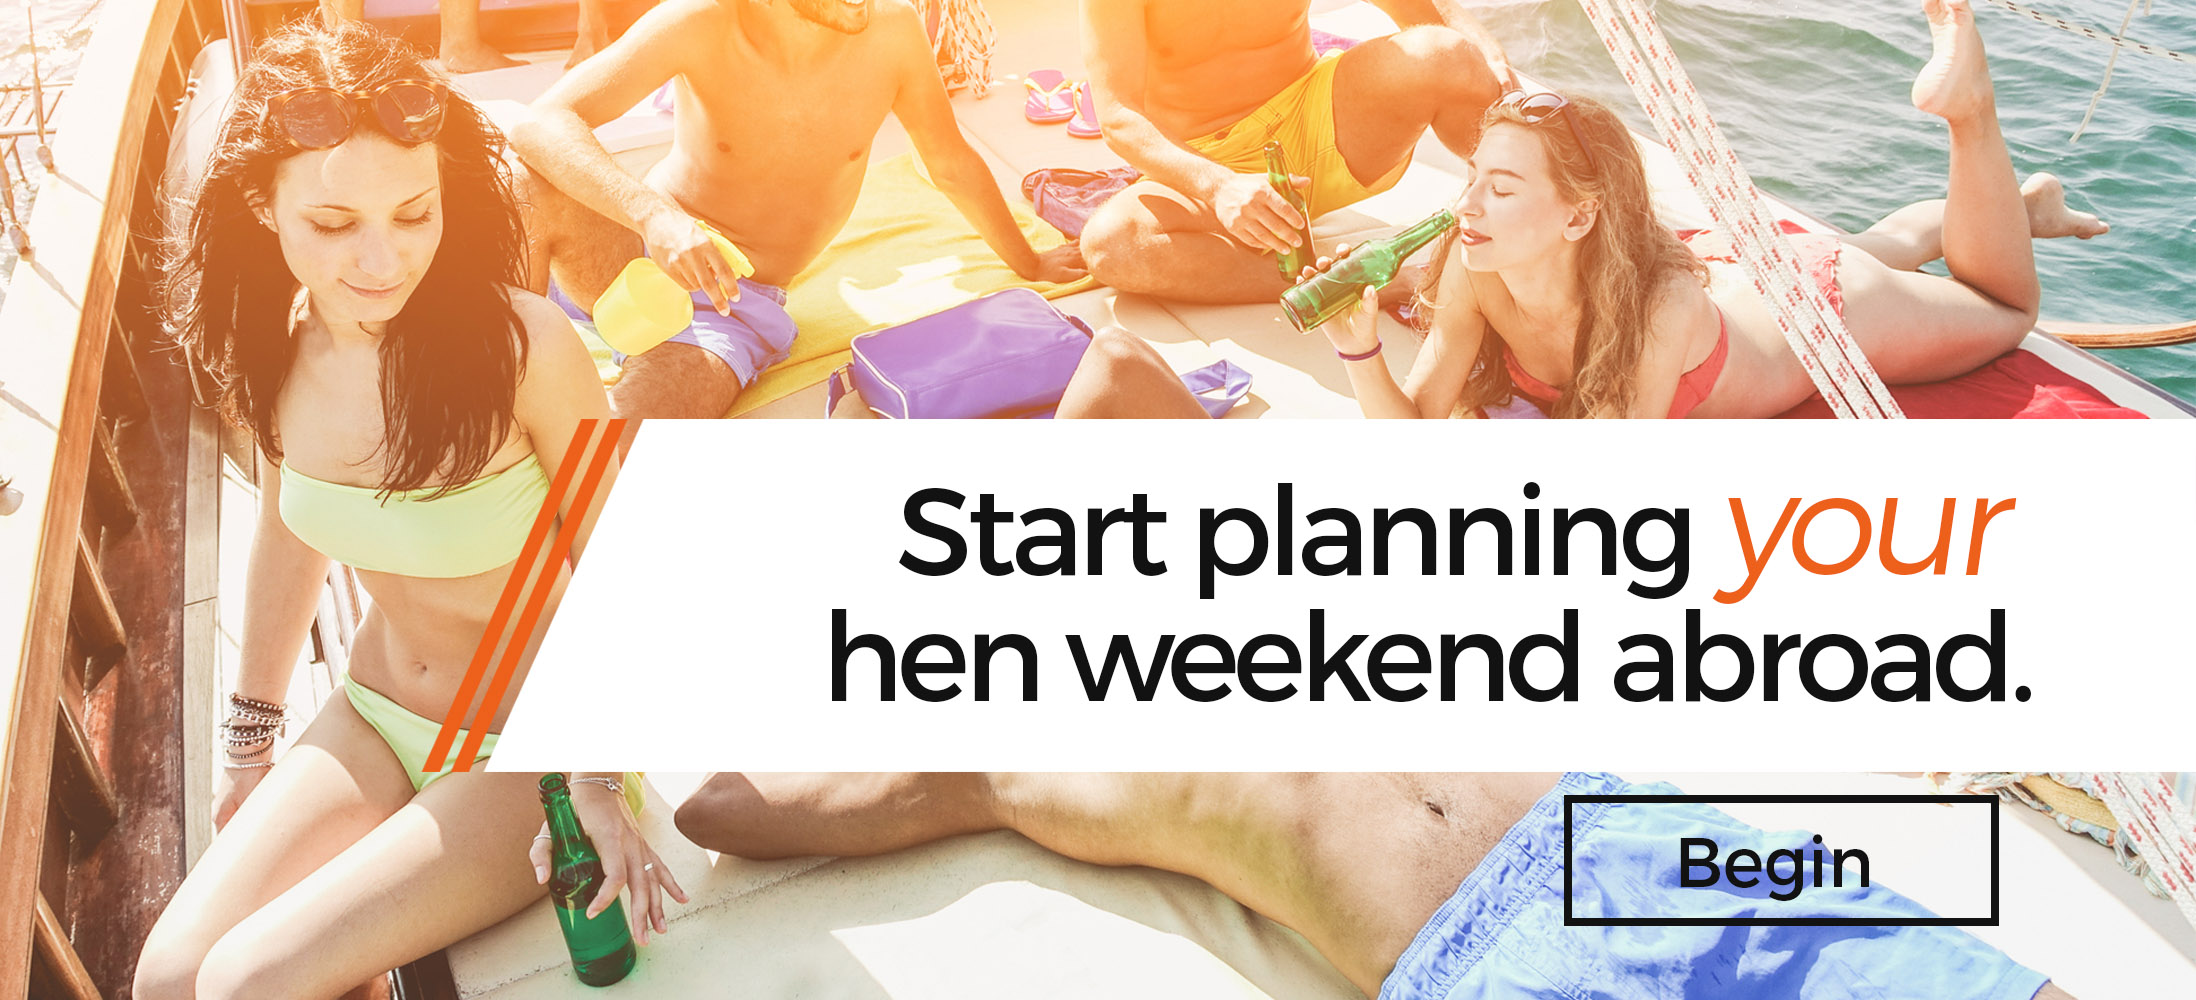 Start Planning Your Hen Weekend Abroad here